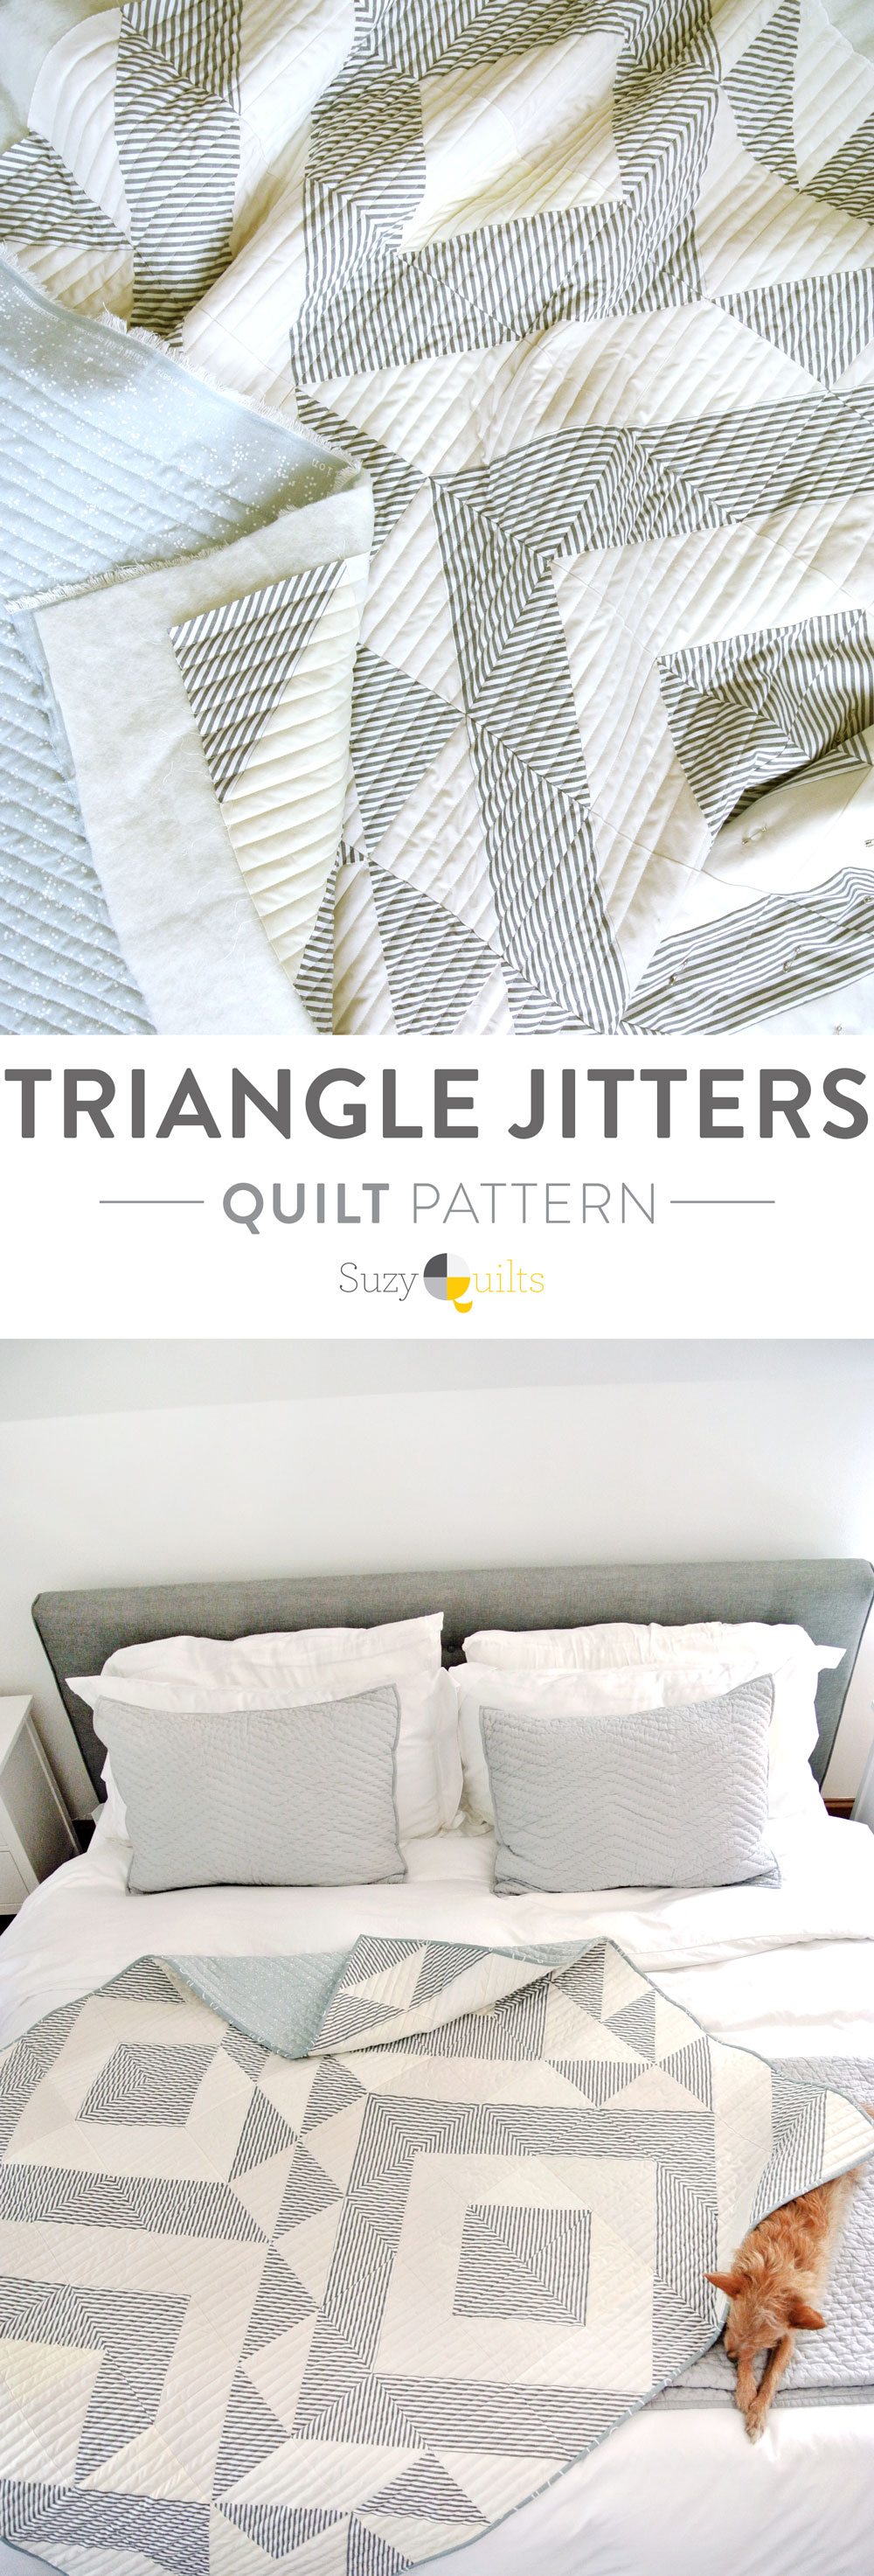 Triangle-Jitters-quilt-pattern-sale